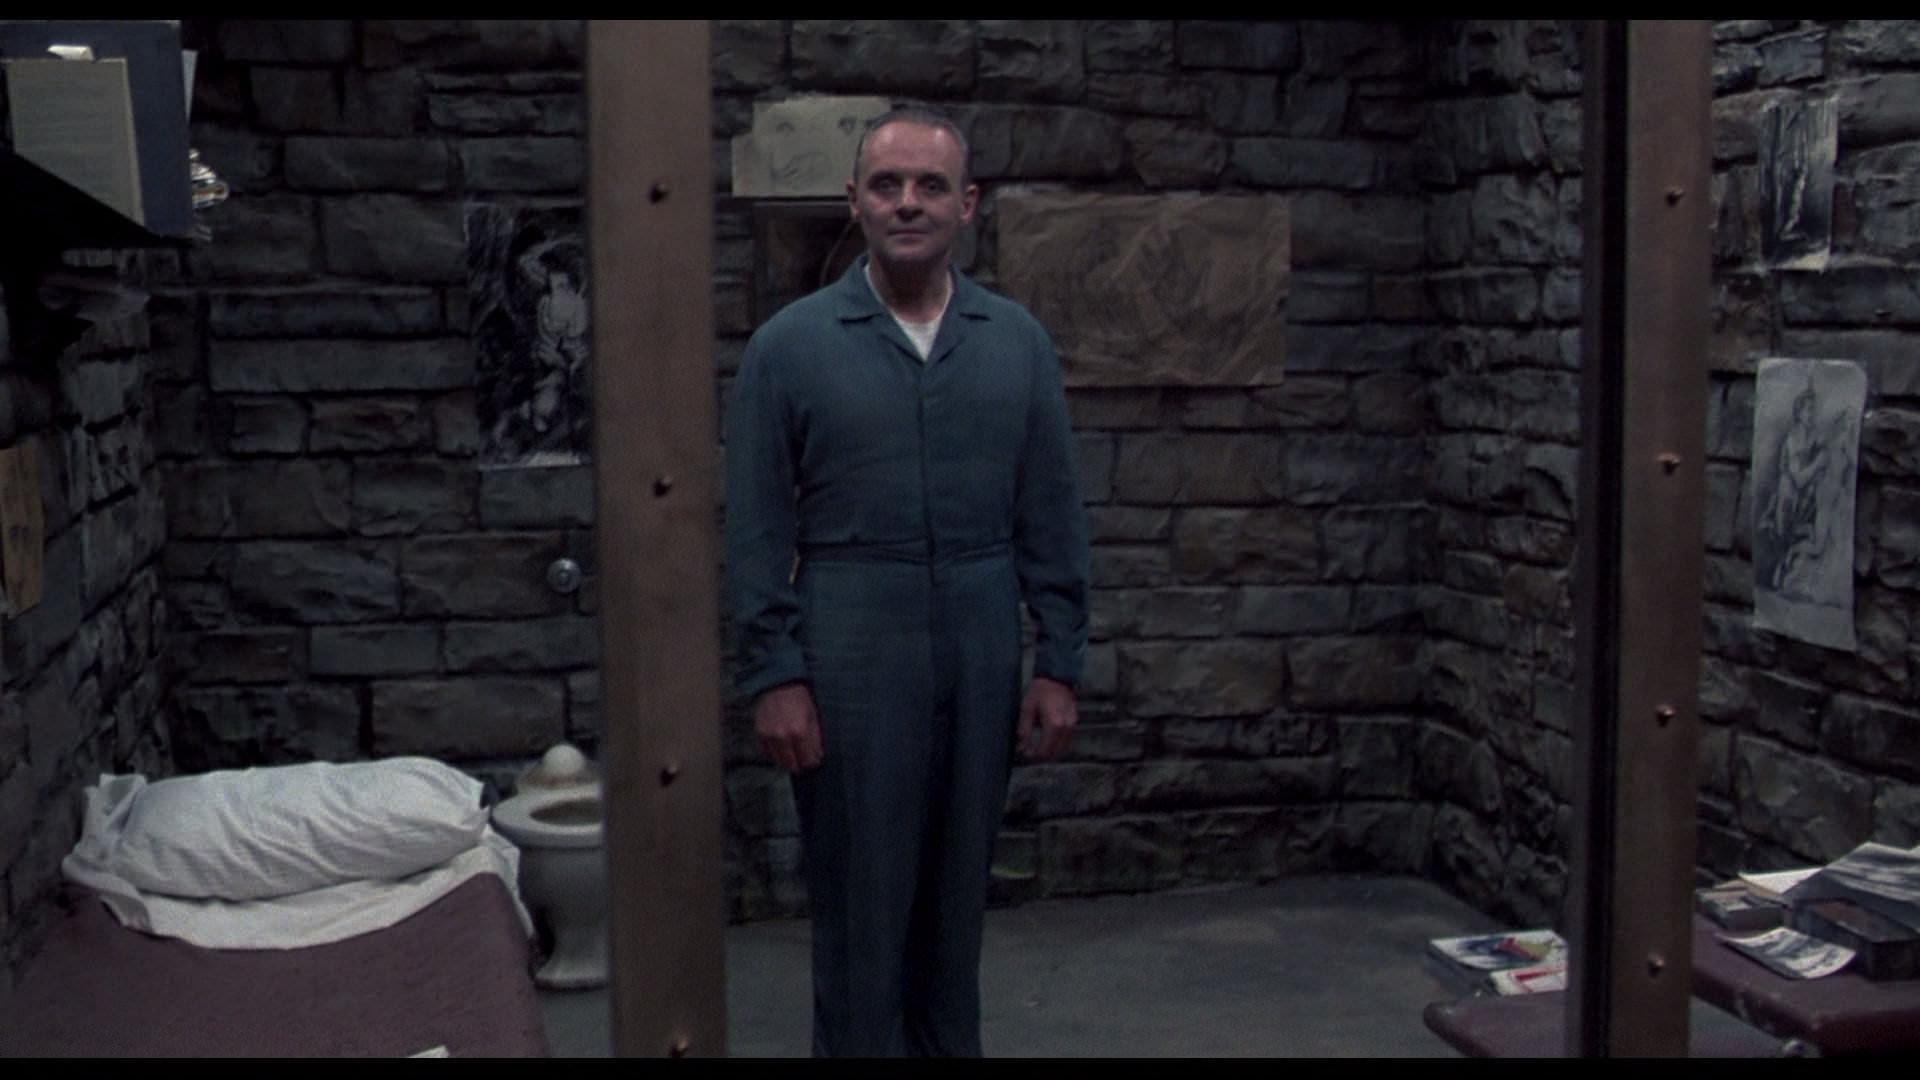 The Silence Of The Lambs wallpapers 1920x1080 Full HD (1080p ...